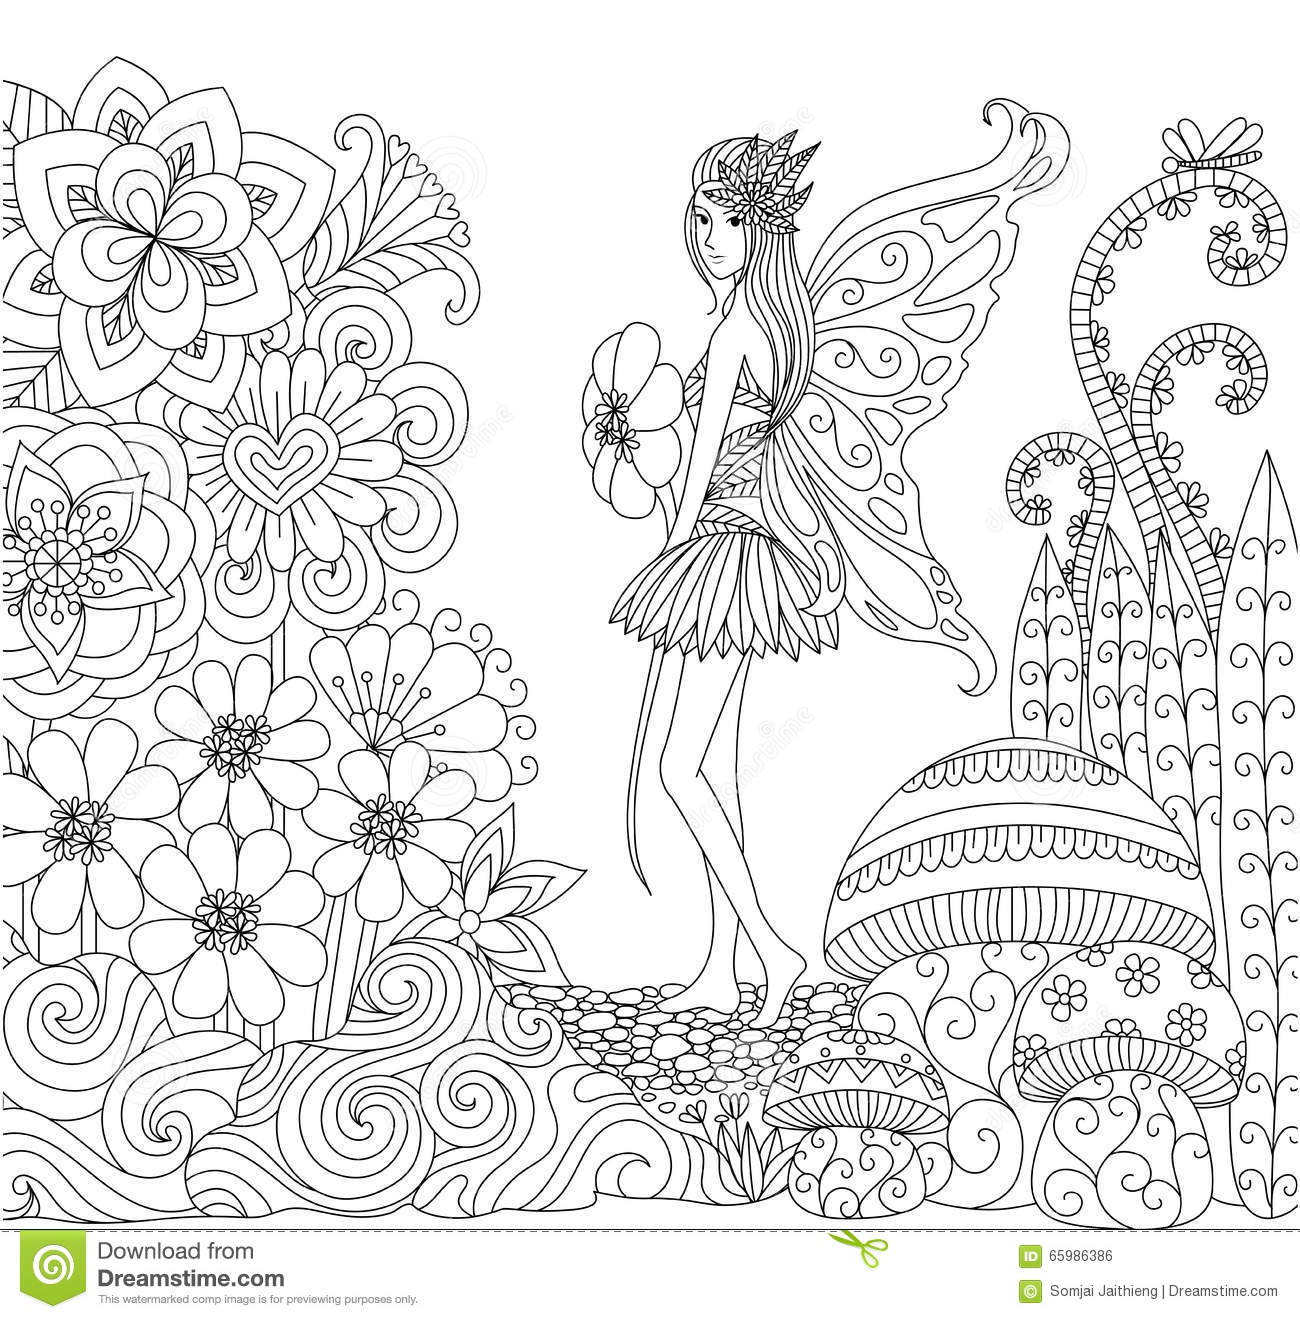 Royalty Free Vector Download Hand Drawn Fairy Walking In The Flowers Land For Coloring Book Adult